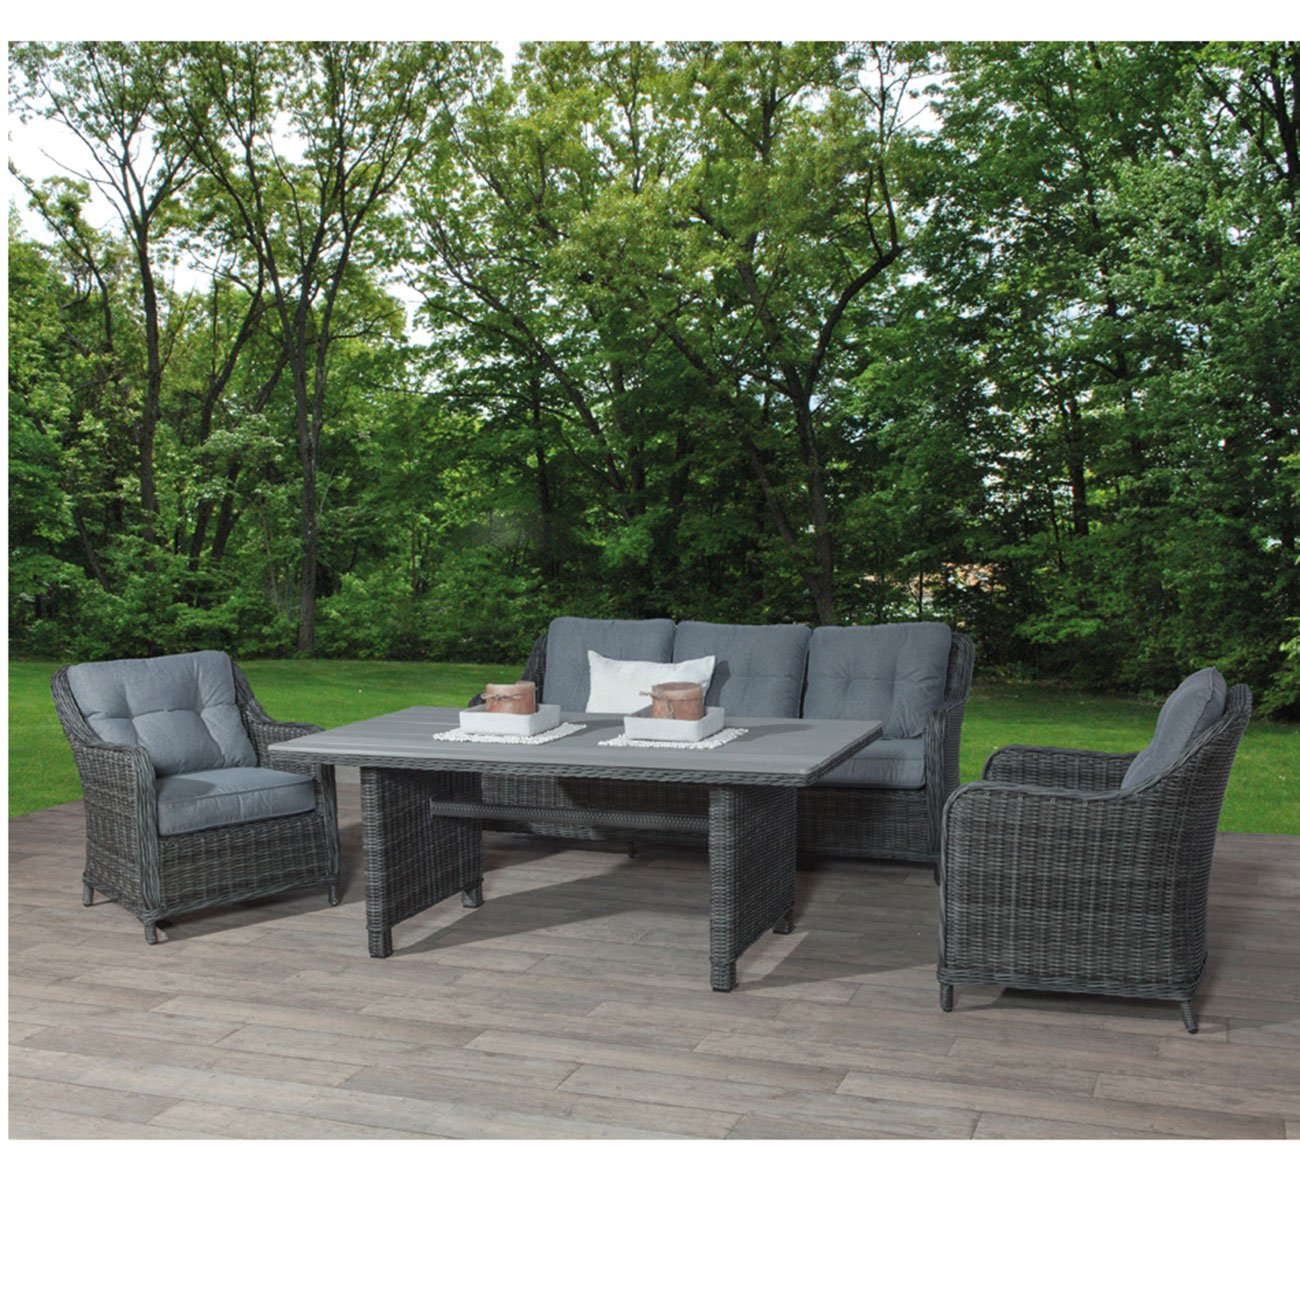 dining lounge set outliv milwaukee essgruppe garten polyrattan grau 4 teilig gartenlounge. Black Bedroom Furniture Sets. Home Design Ideas